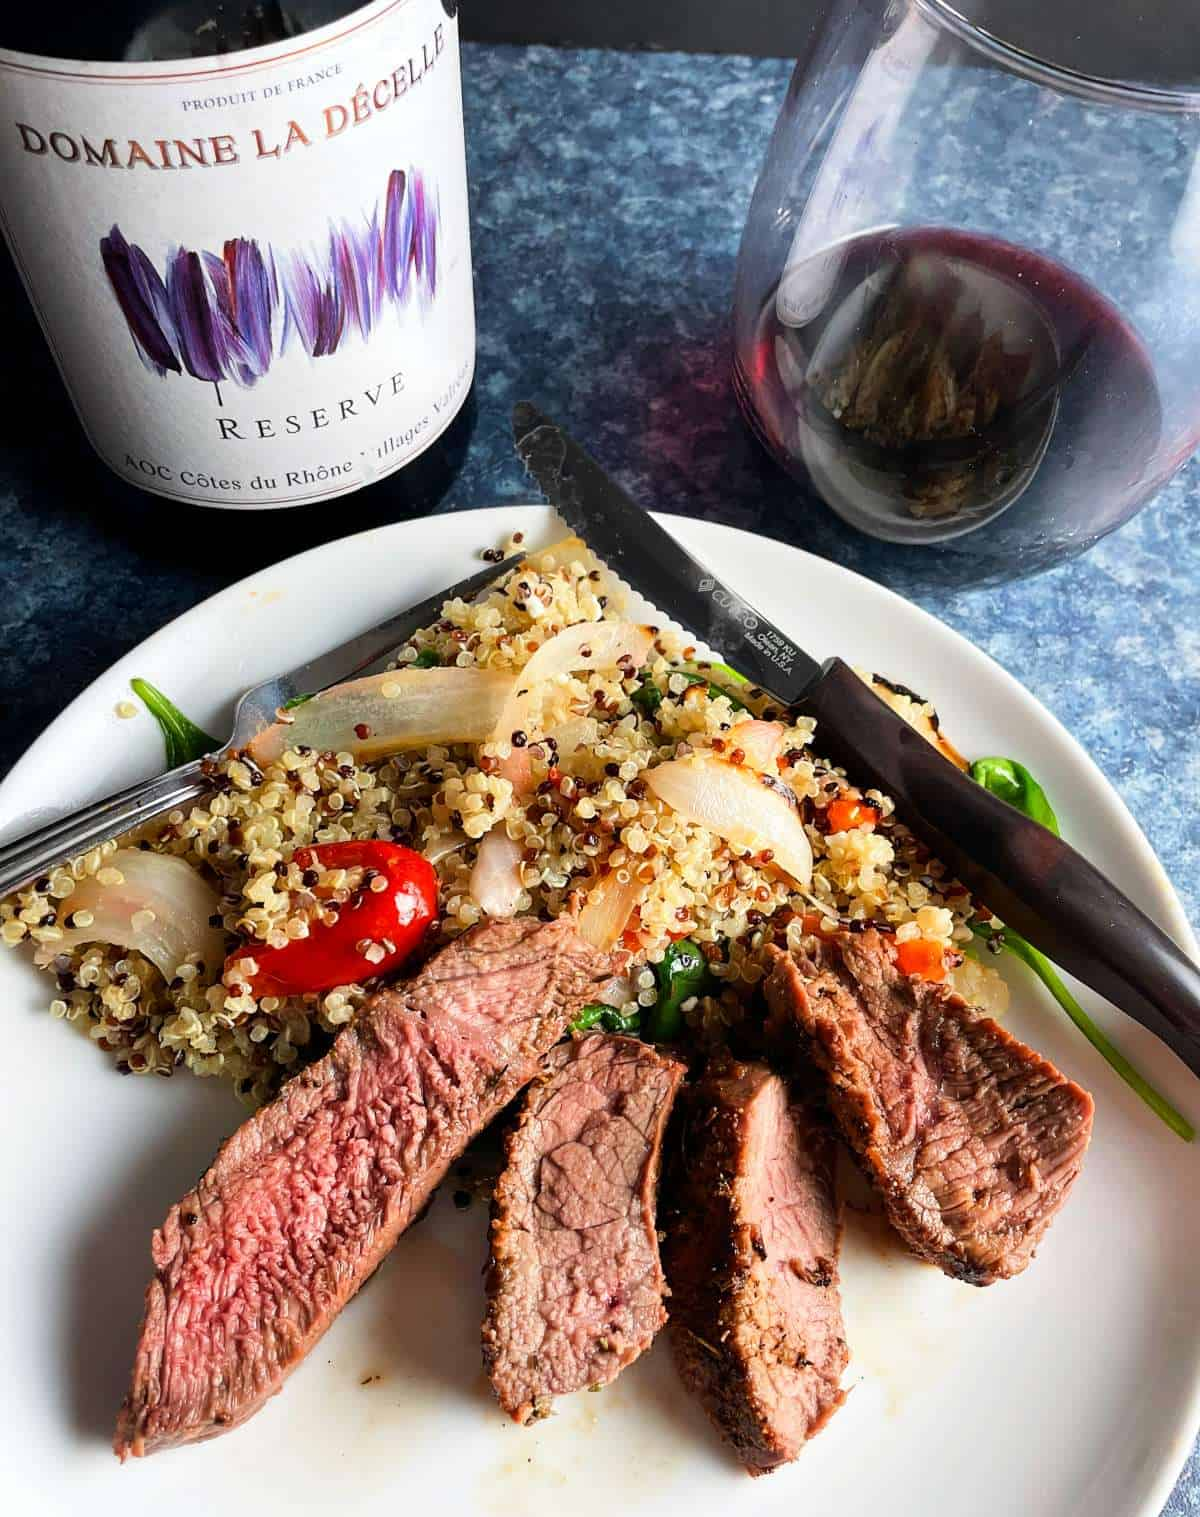 slices of sirloin steak served with quinoa and a Cotes du Rhone red wine.